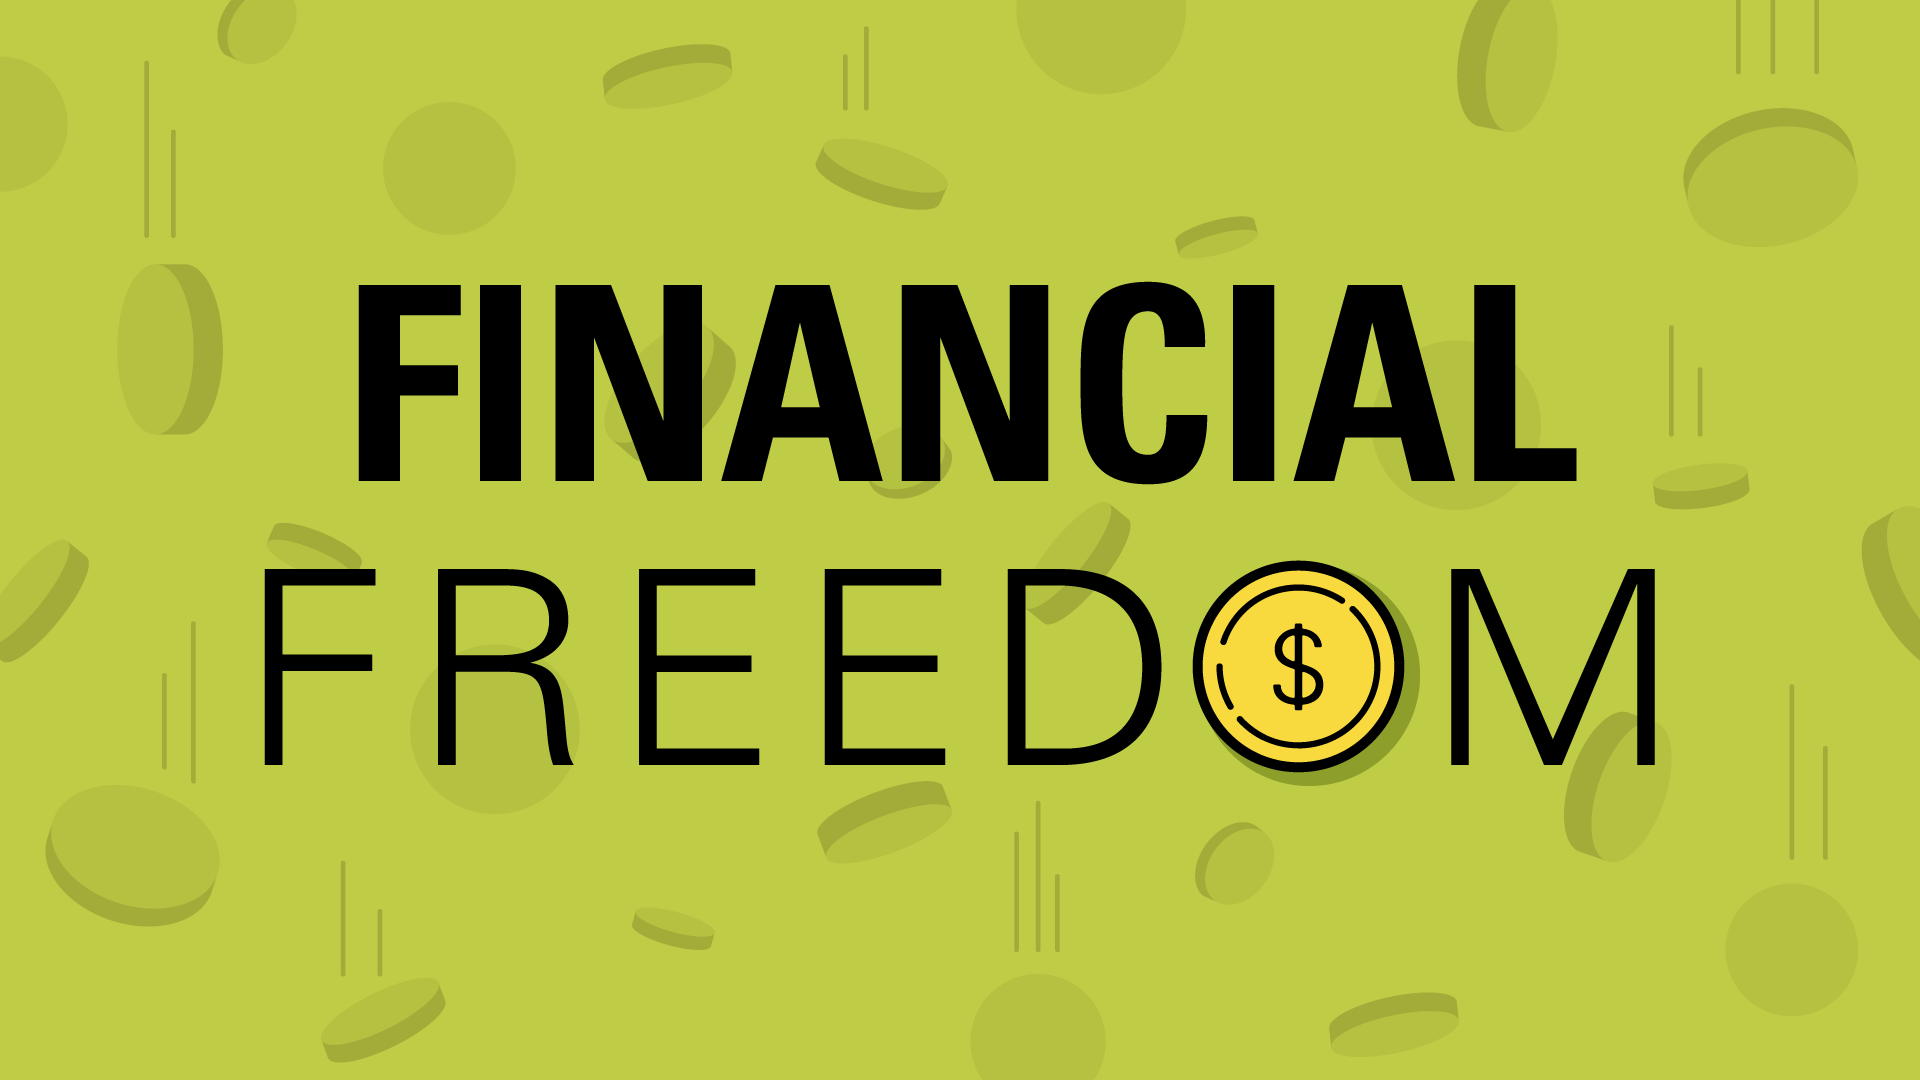 Financial Freedom graphic